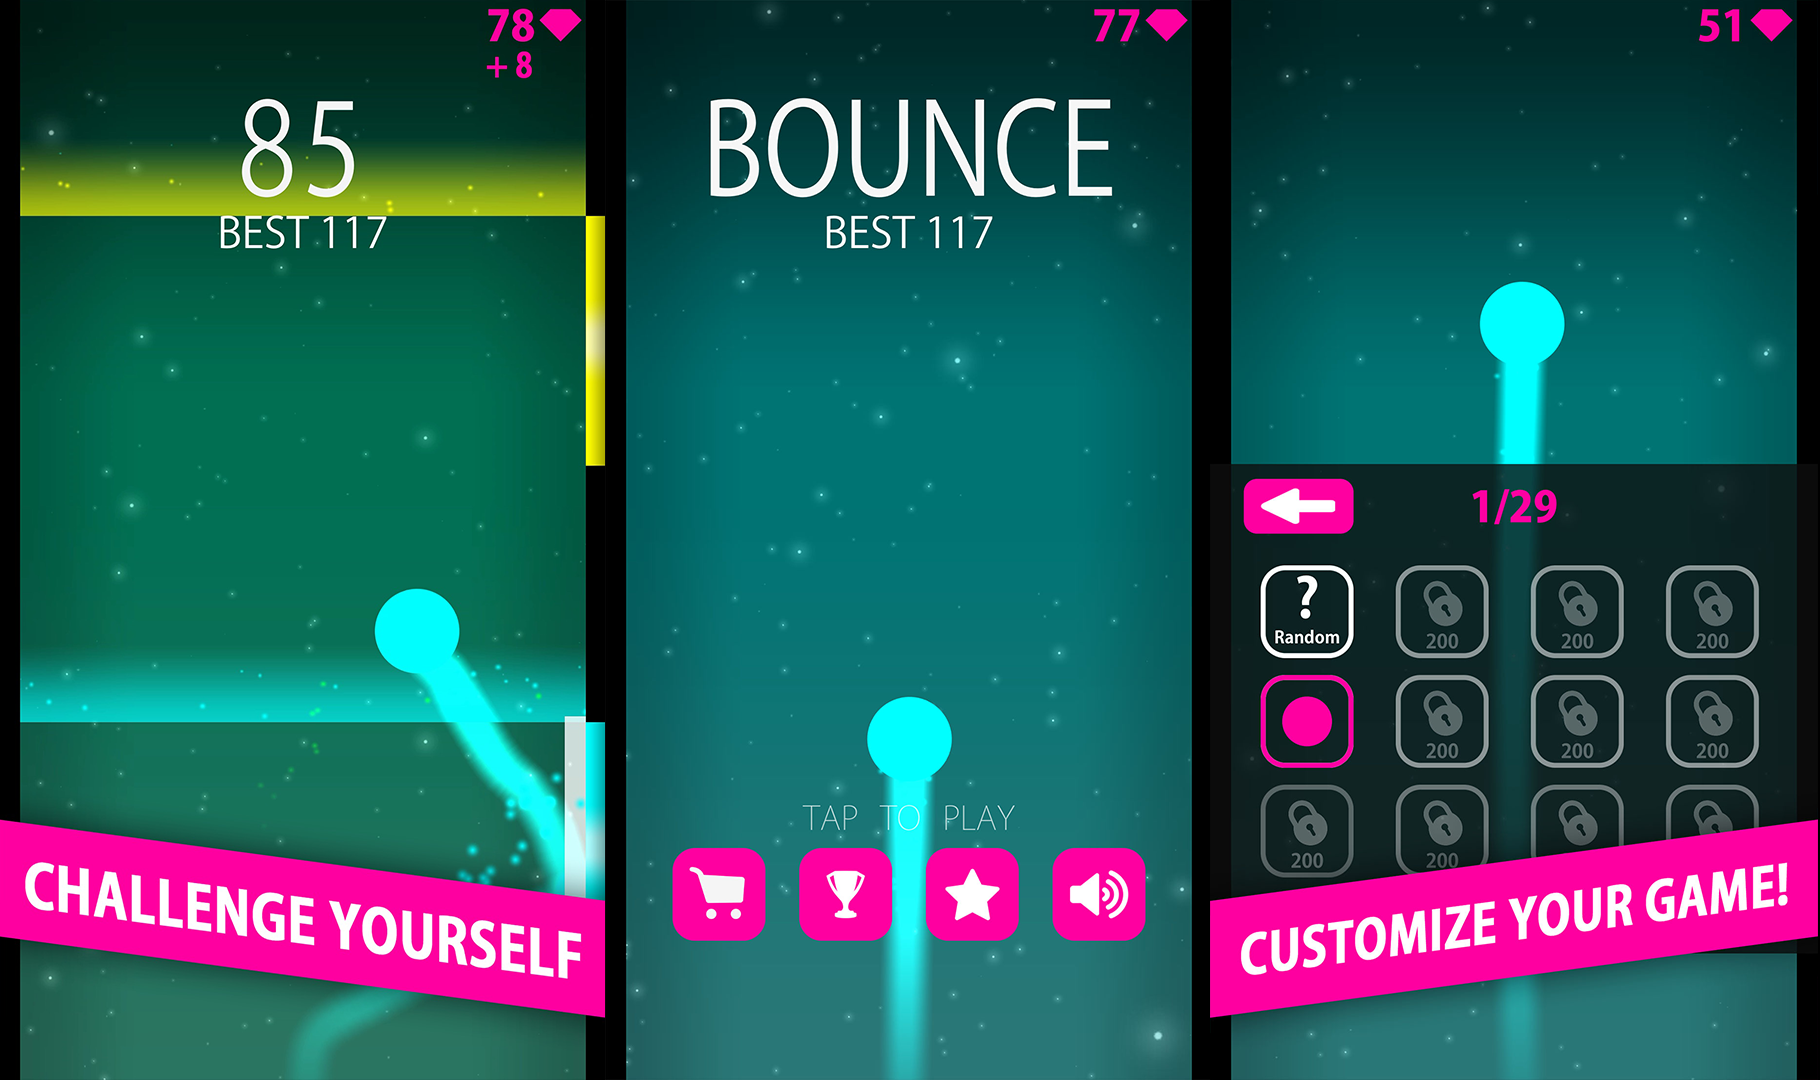 Bounce - Don´t tap too late!